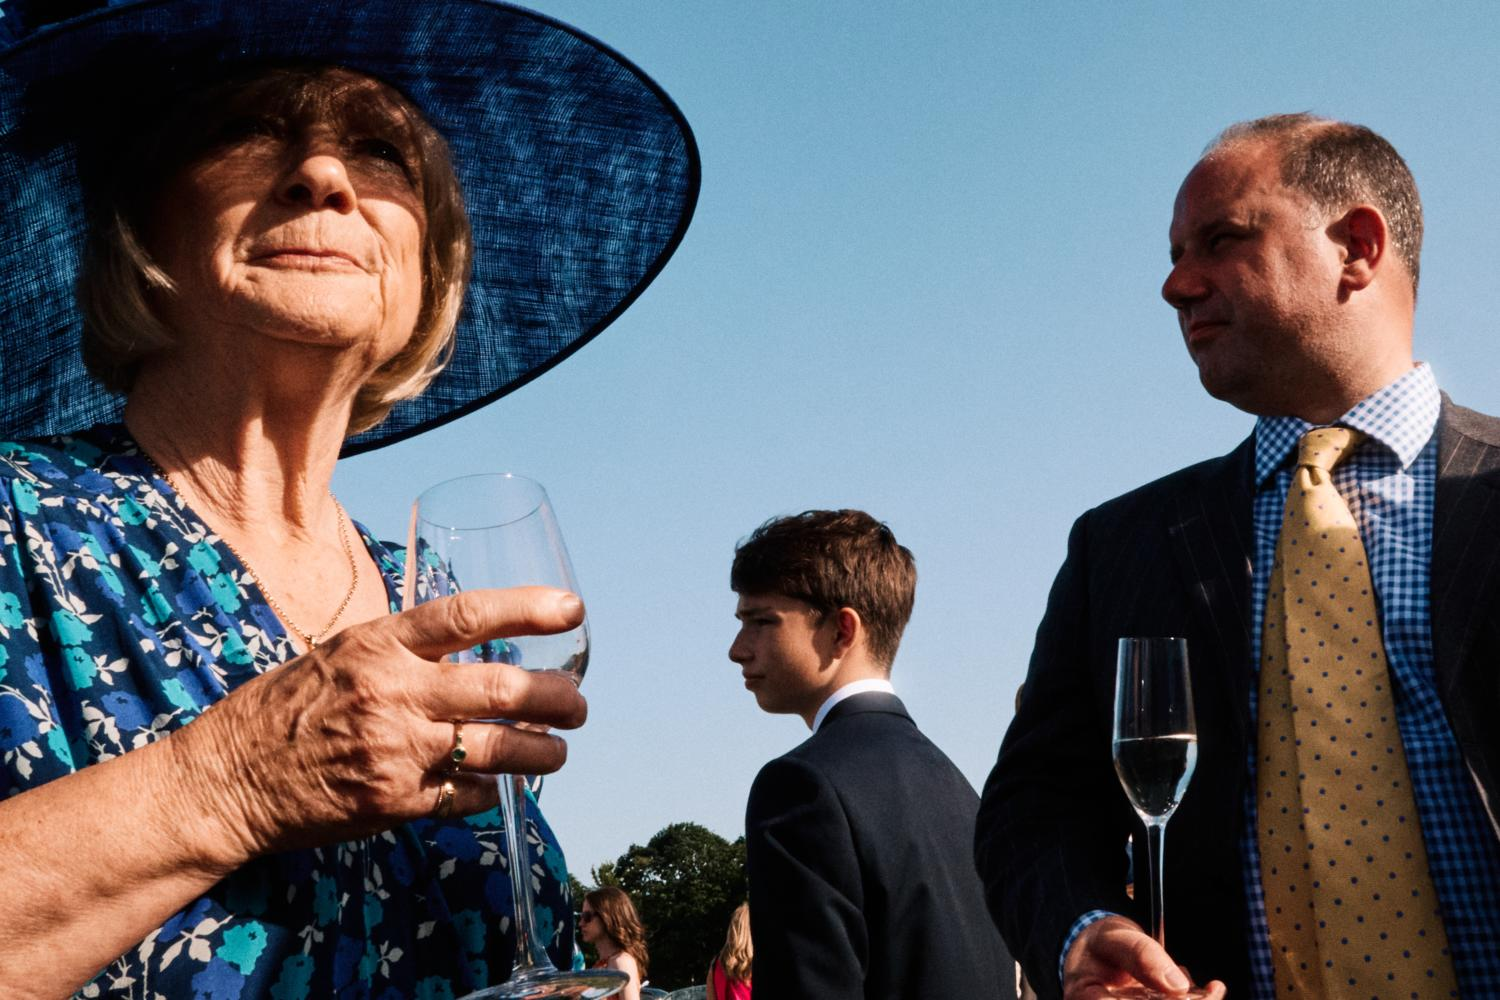 Three wedding guests look in separate directions at a wedding